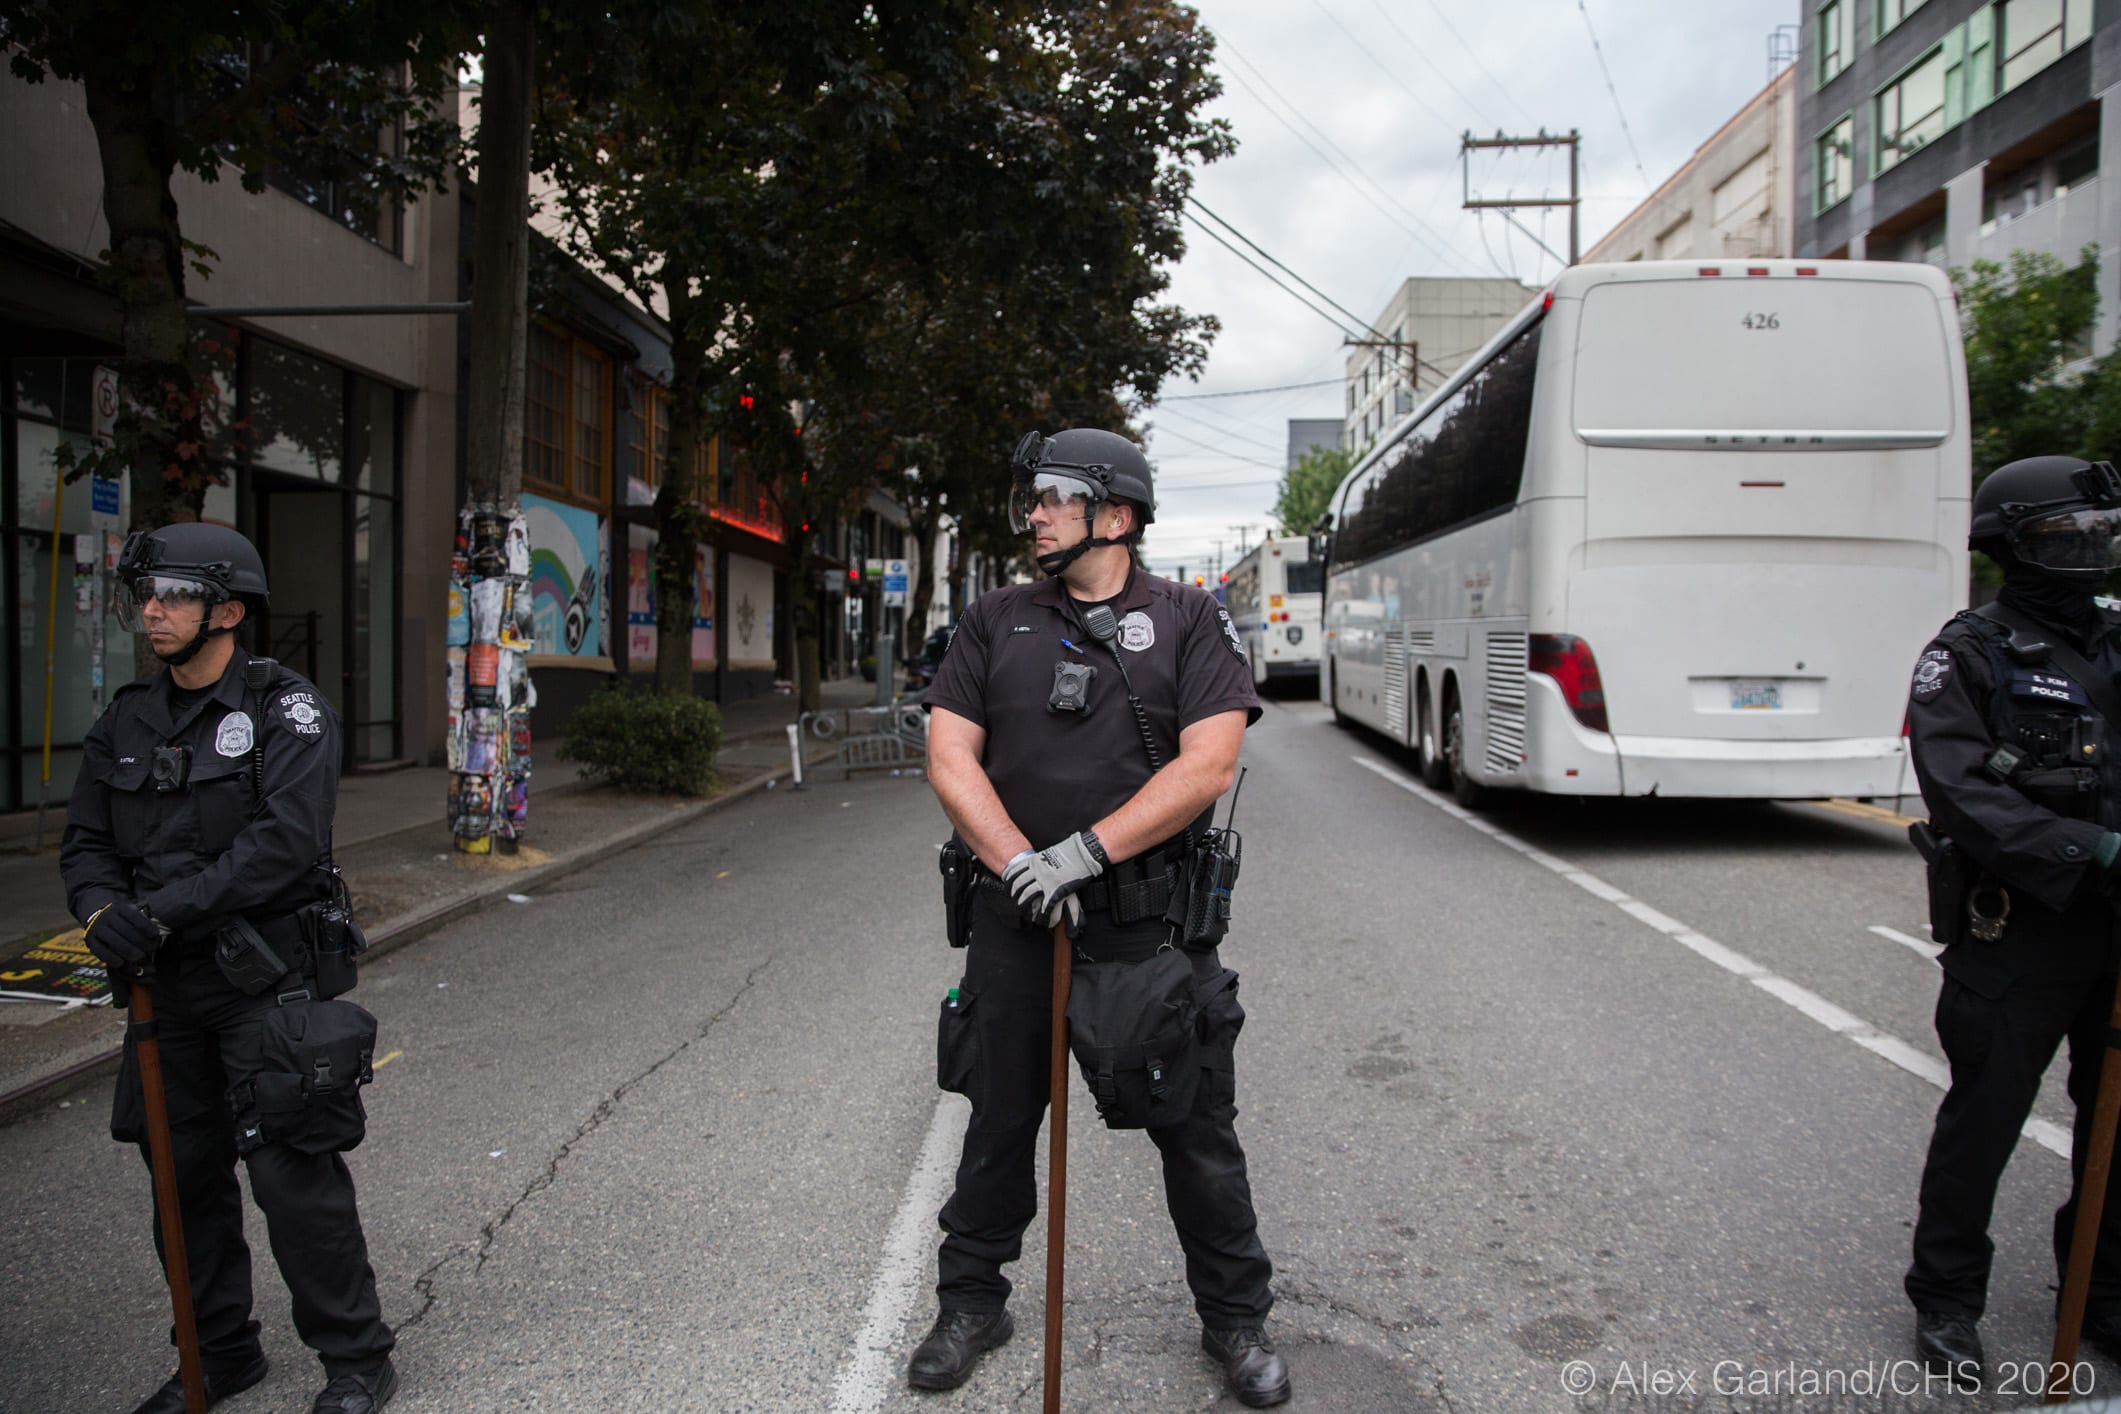 Seattle Police Department brings 'perfect storm' concerns to East Precinct community crime meeting